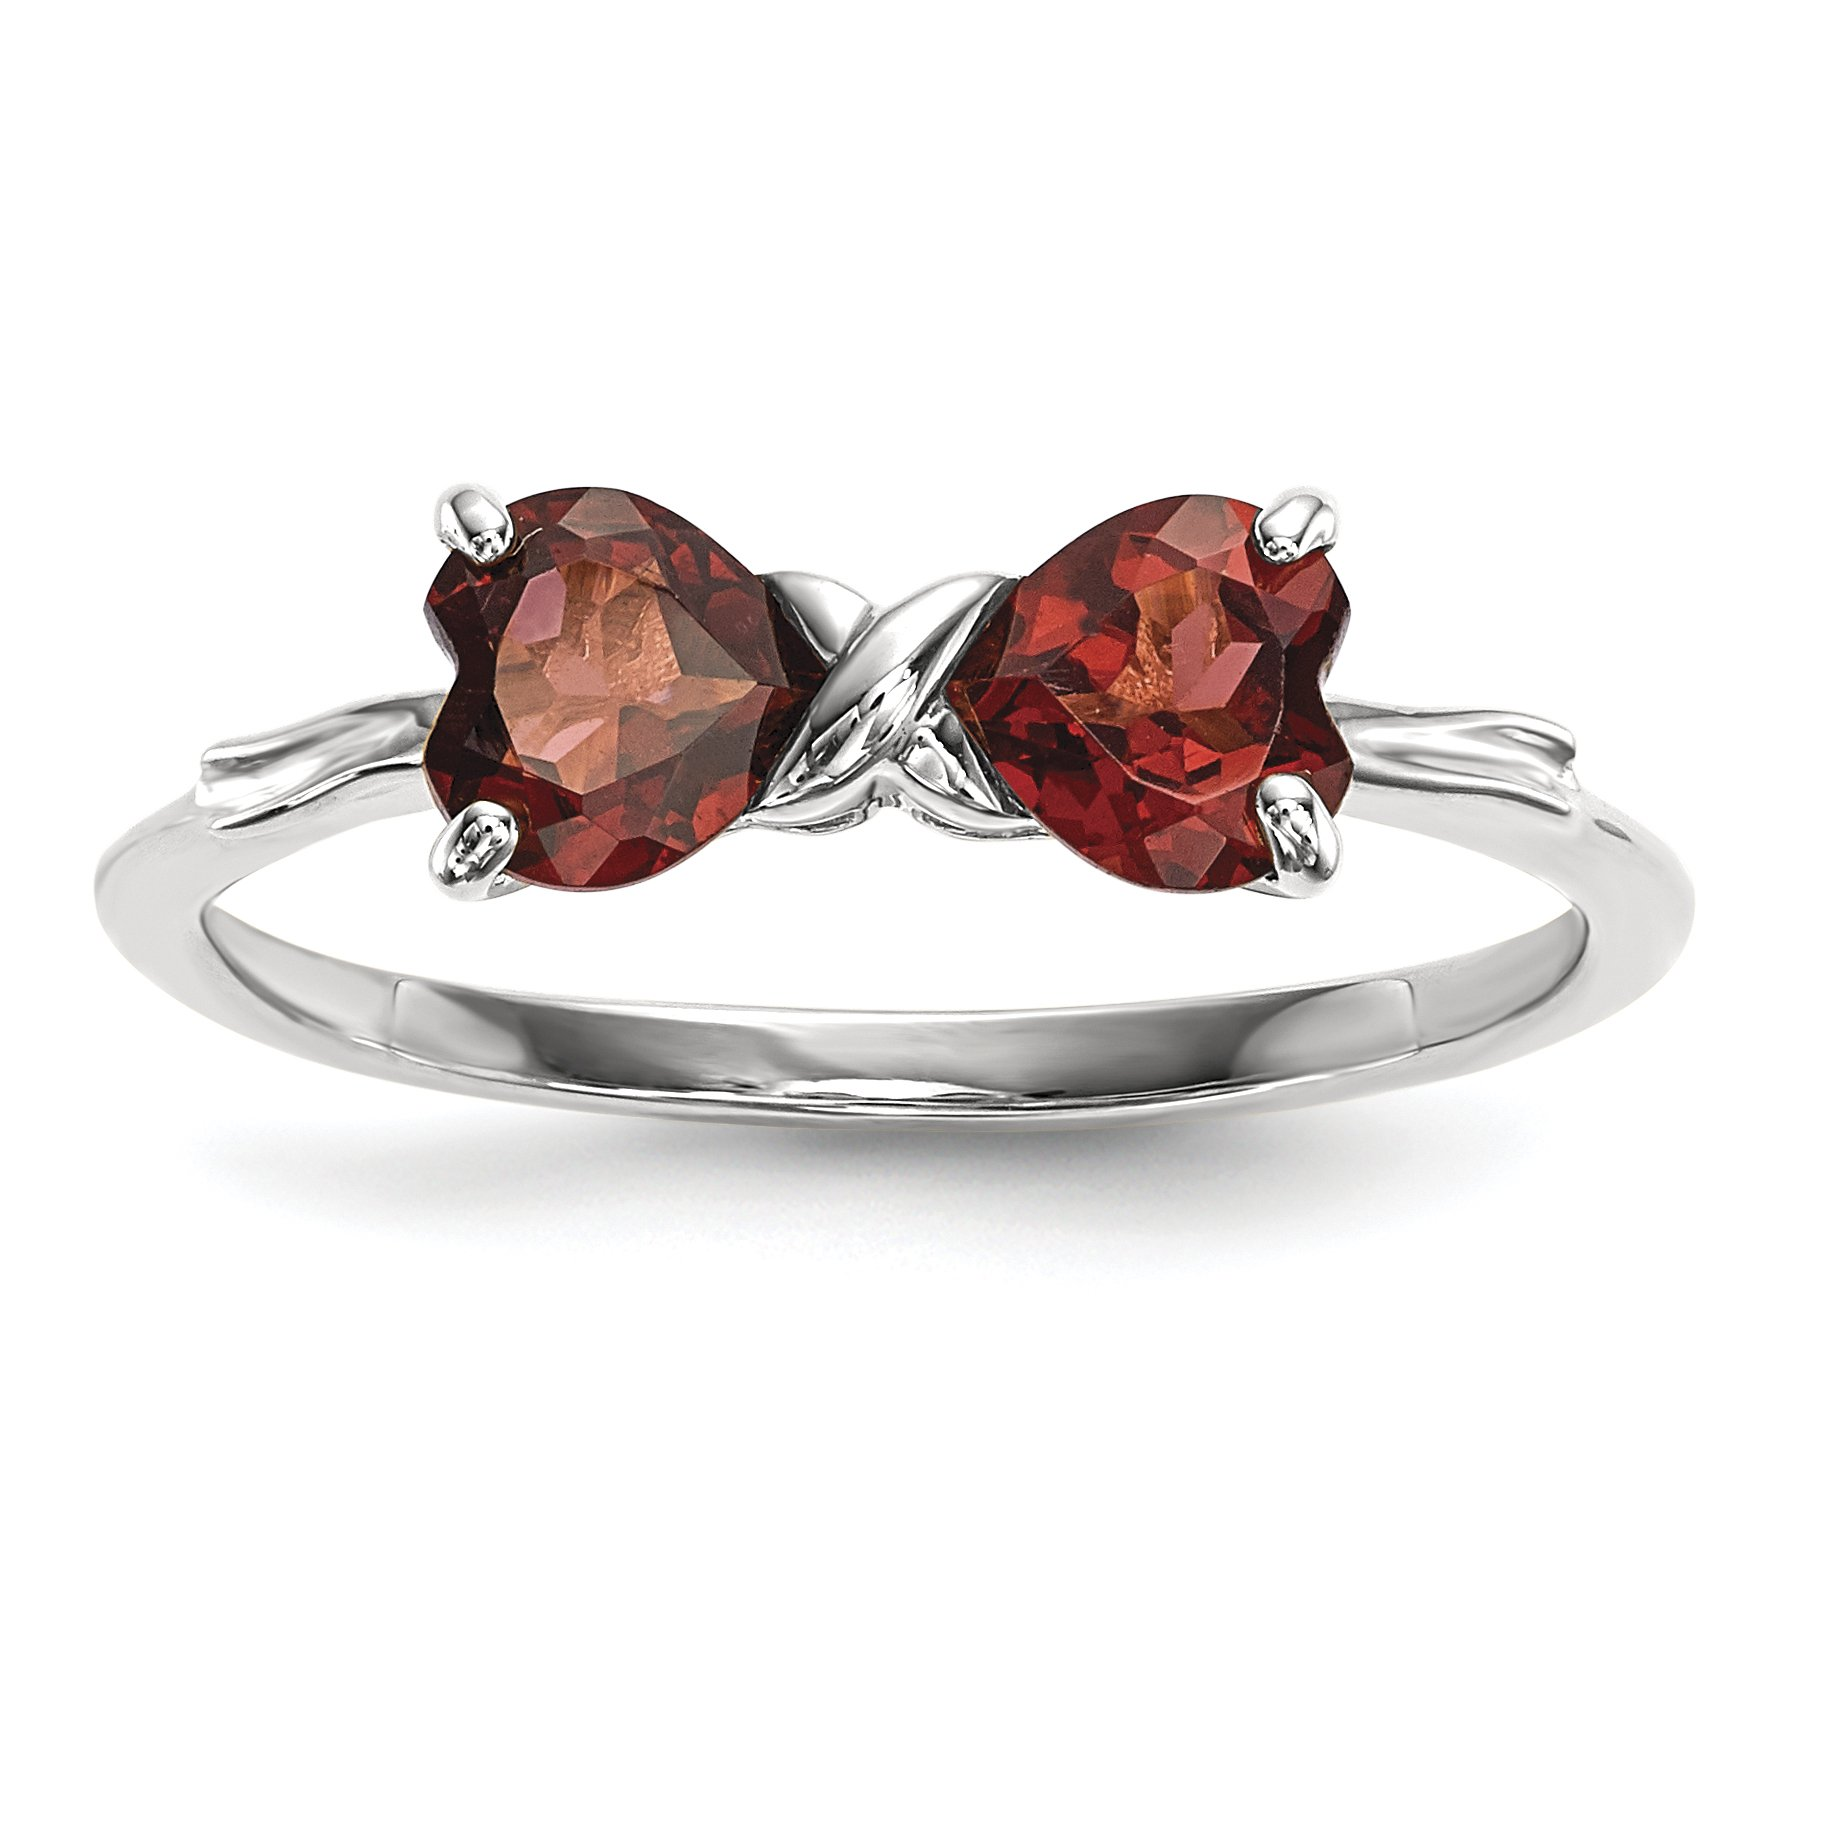 ICE CARATS 14k White Gold Red Garnet Bow Band Ring Size 7.00 Birthstone January Set Style Fine Jewelry Gift Set For Women Heart